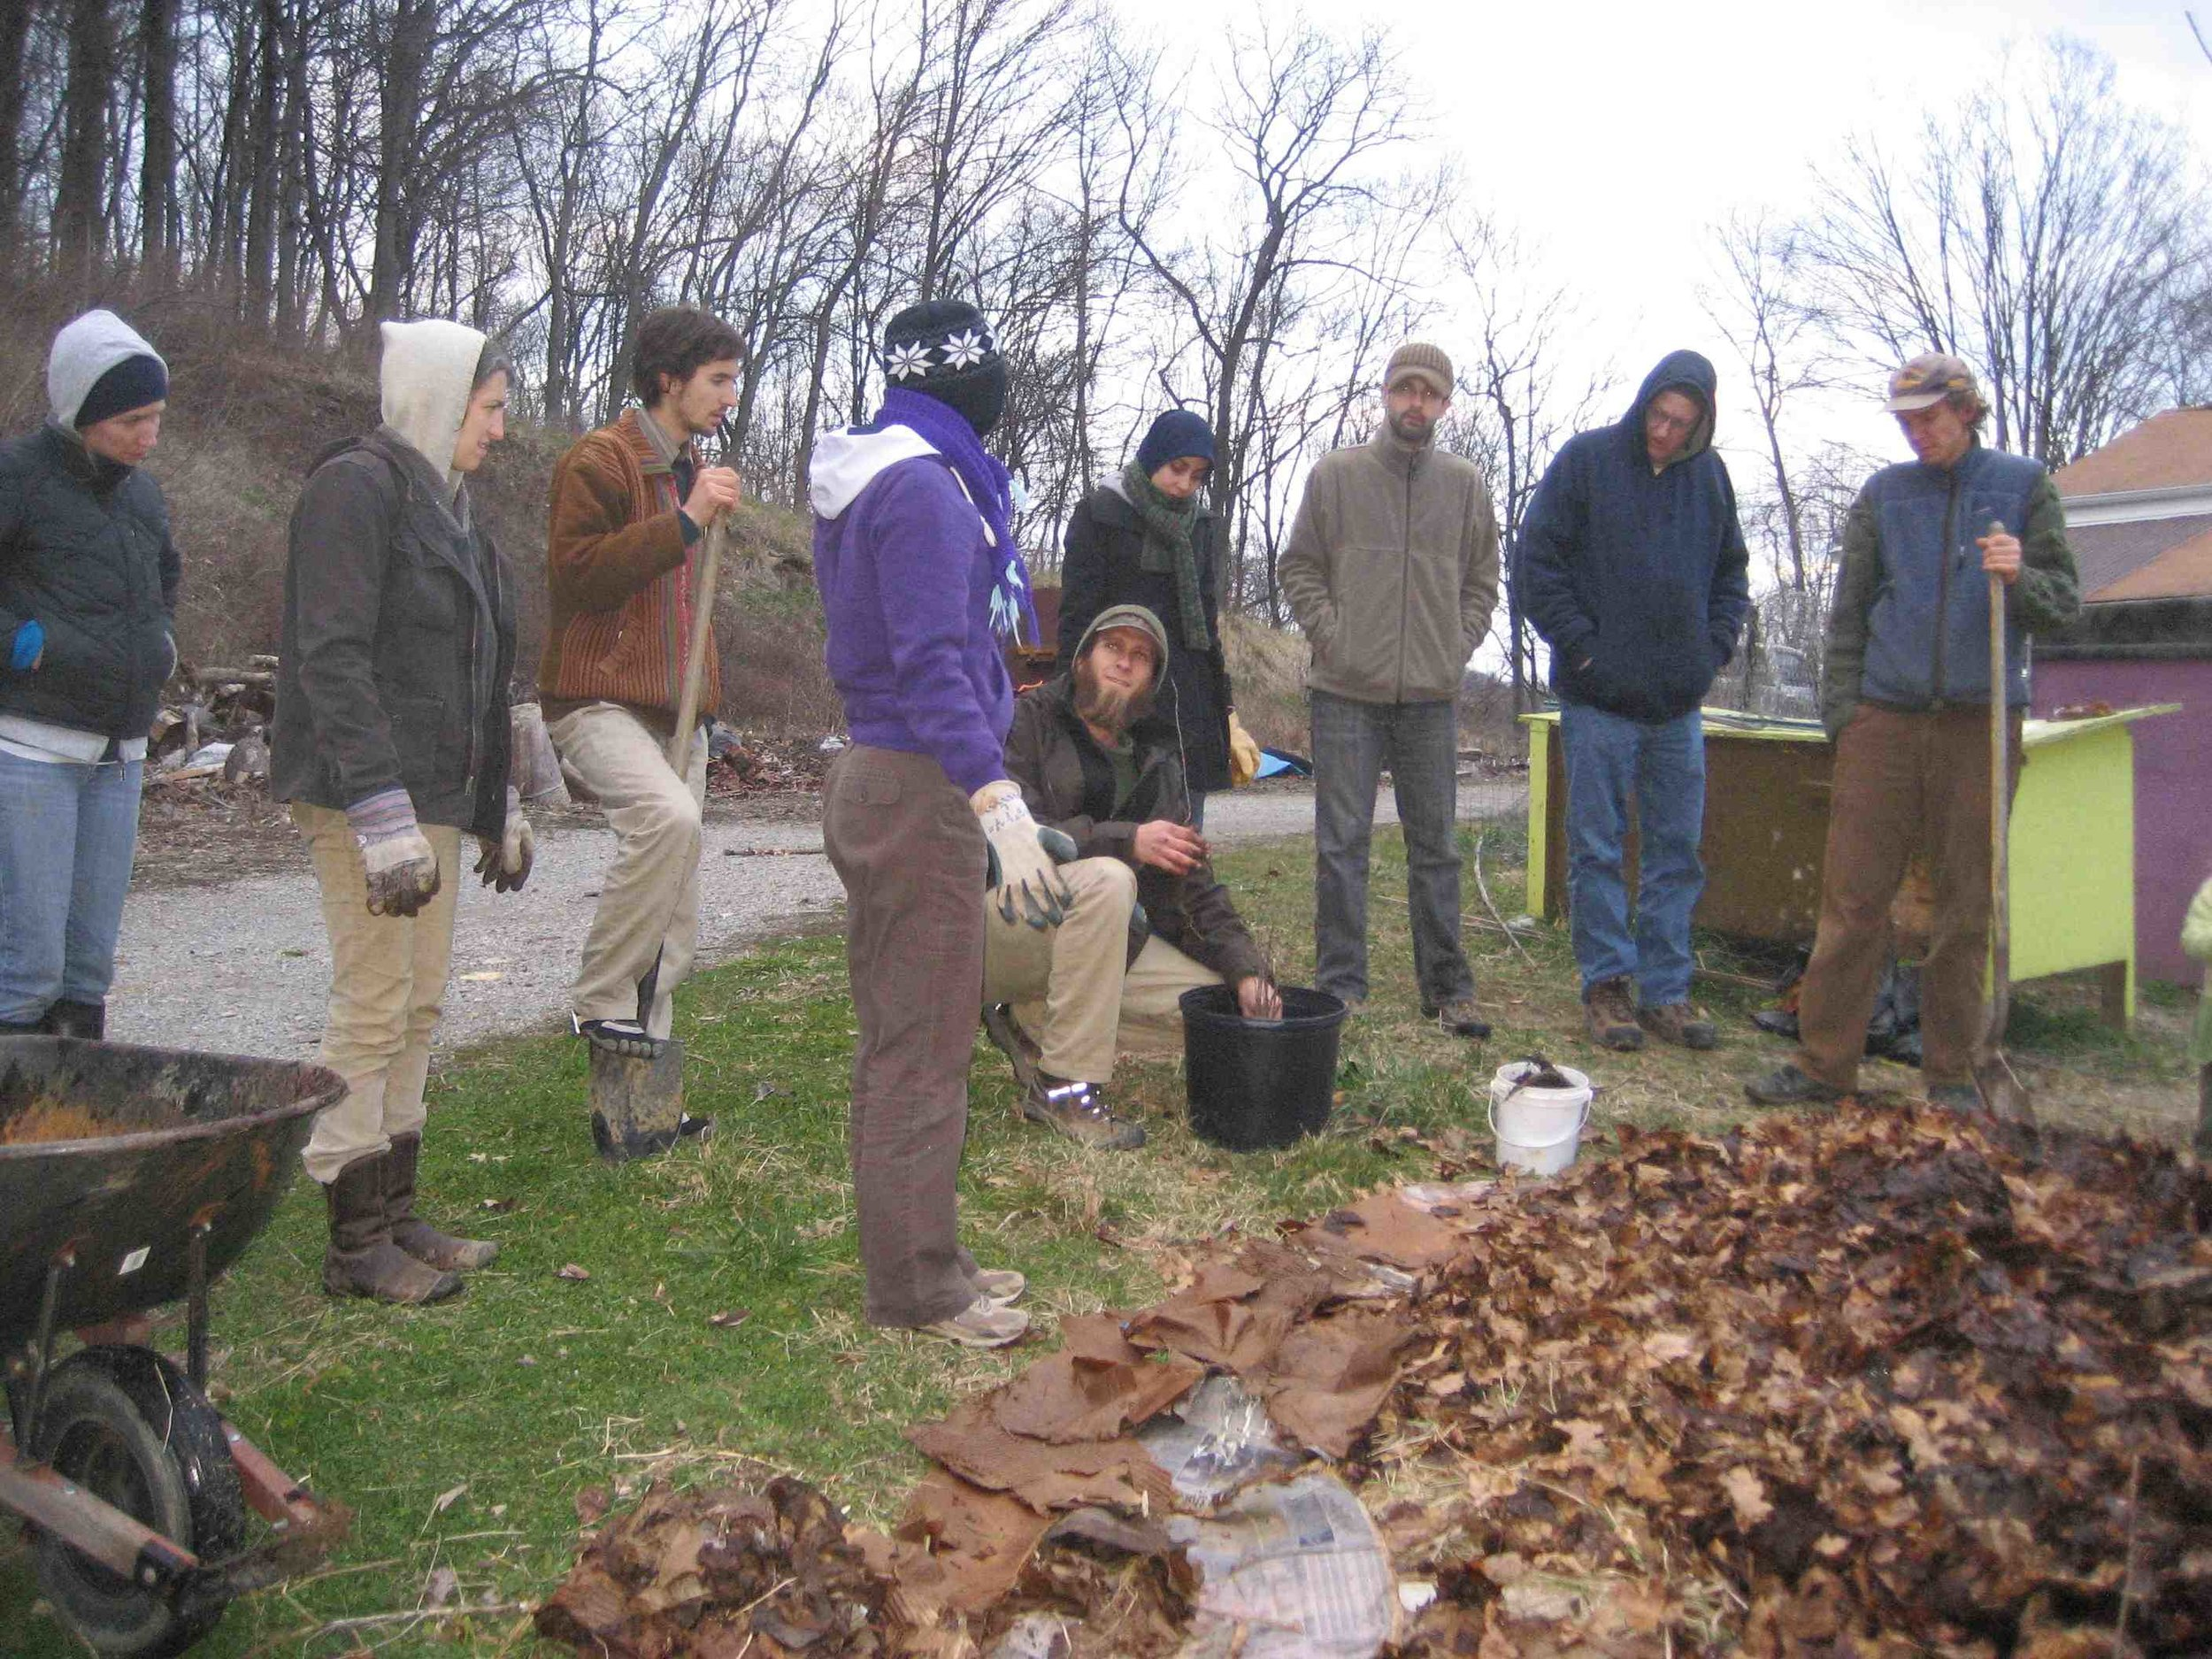 Ande Schewe teaching Food Forests through Hands on Learning